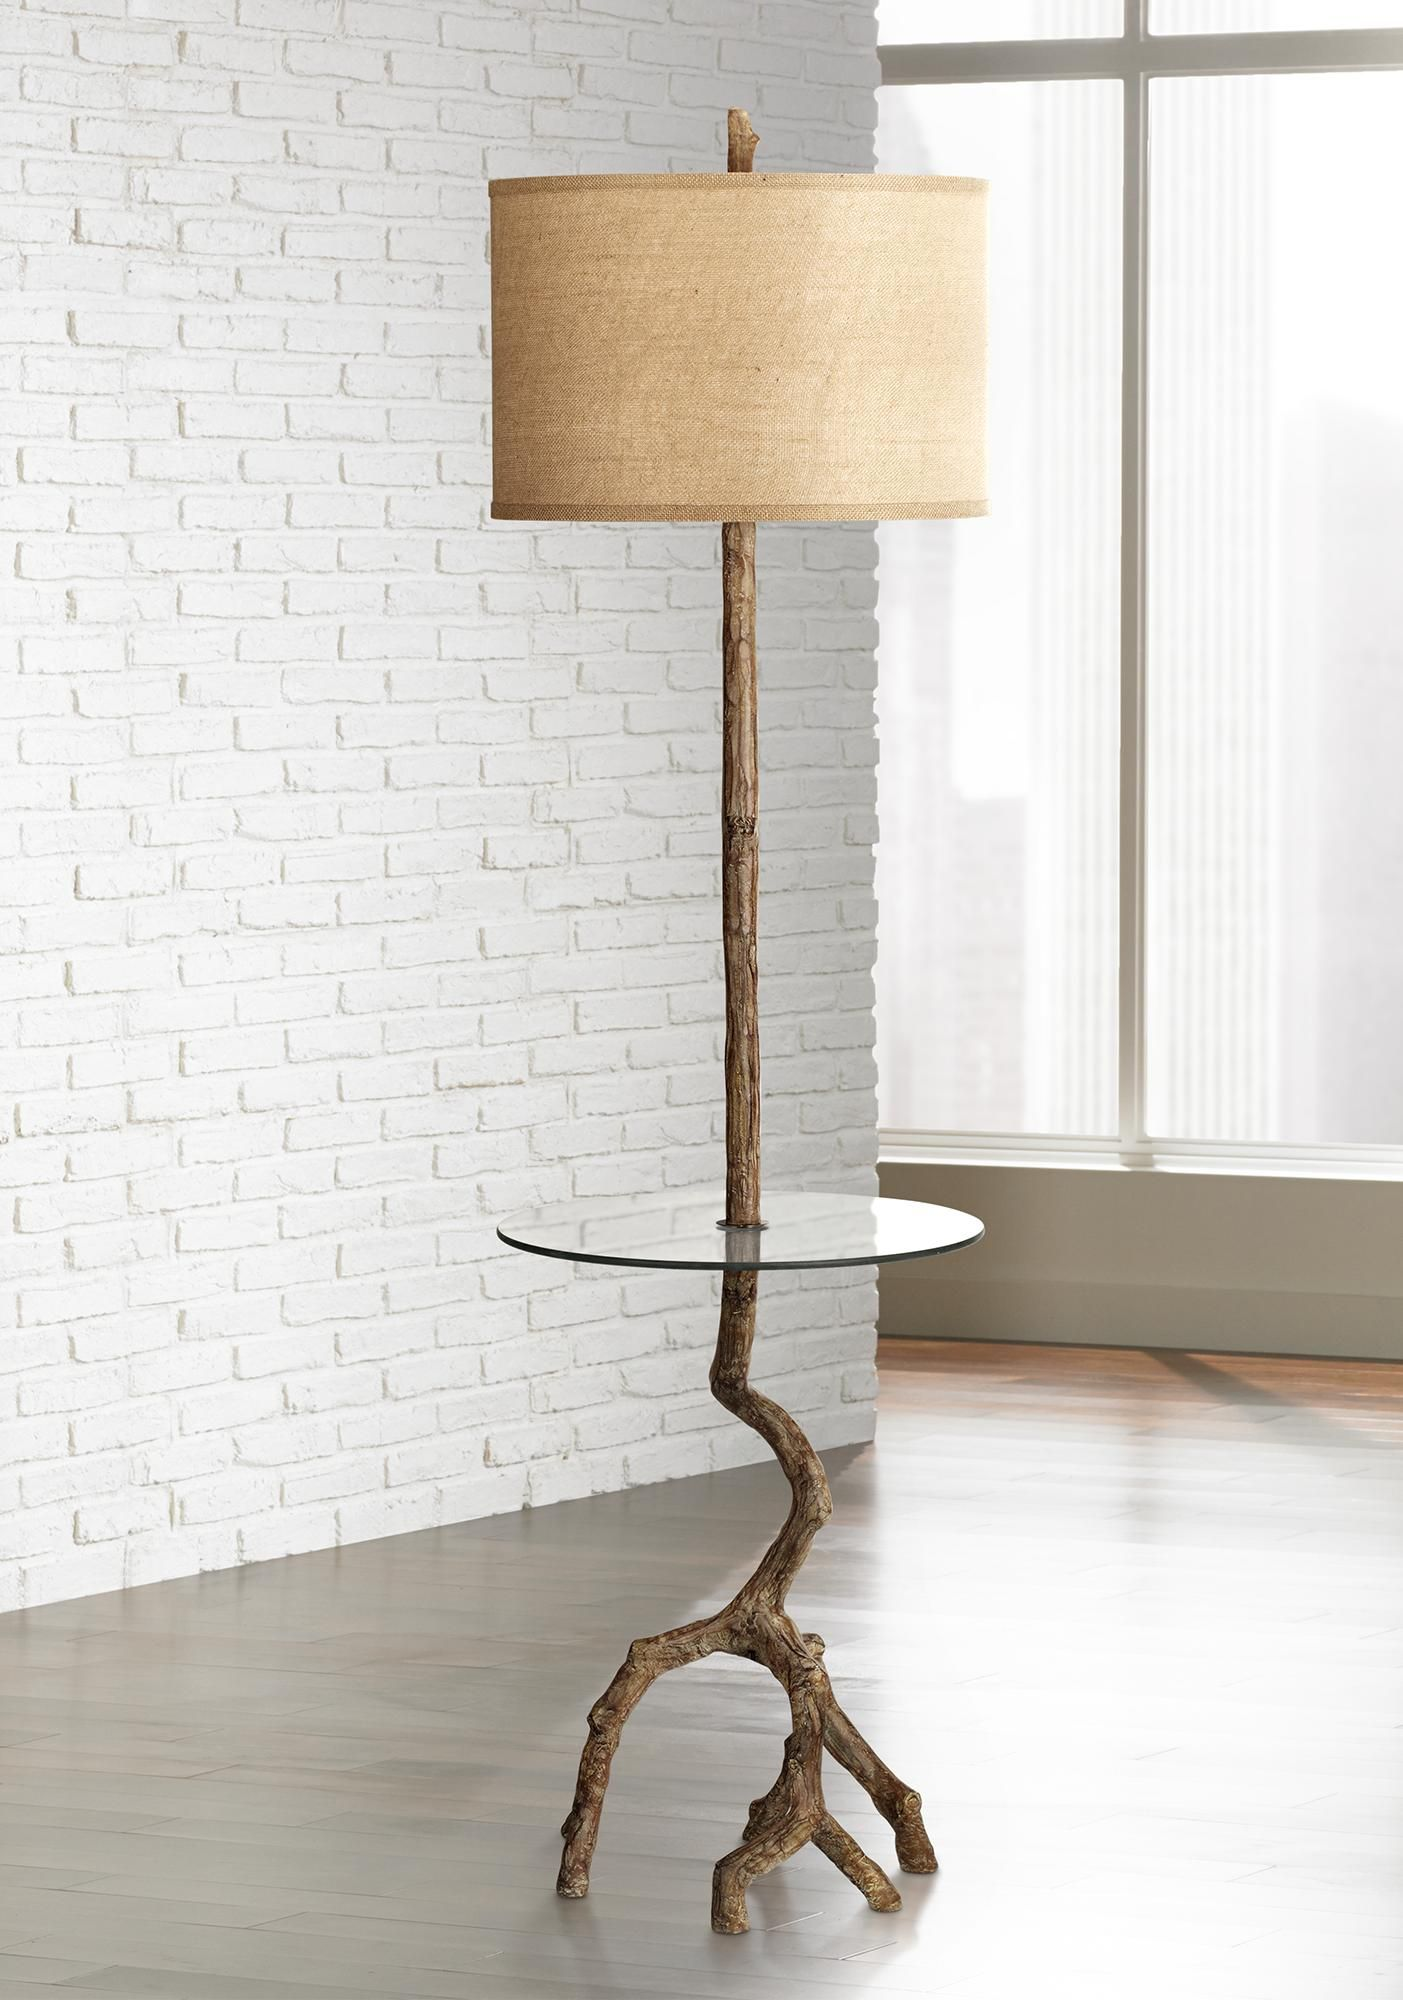 Beachwood Floor Lamp With Glass Tray Table 5d496 Lamps Plus Floor Lamp Floor Lamps Living Room Mission Style Floor Lamps